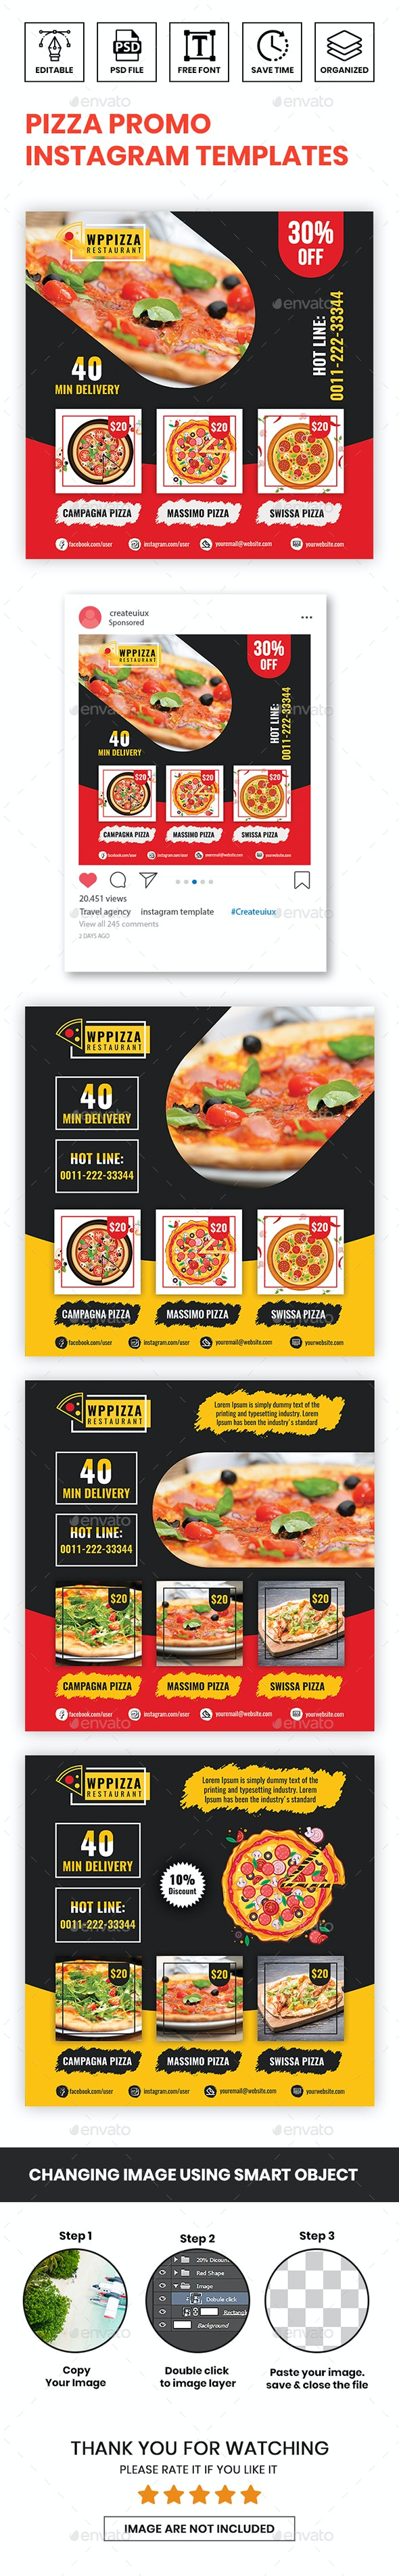 Pizza Promo Instagram Templates - Miscellaneous Social Media